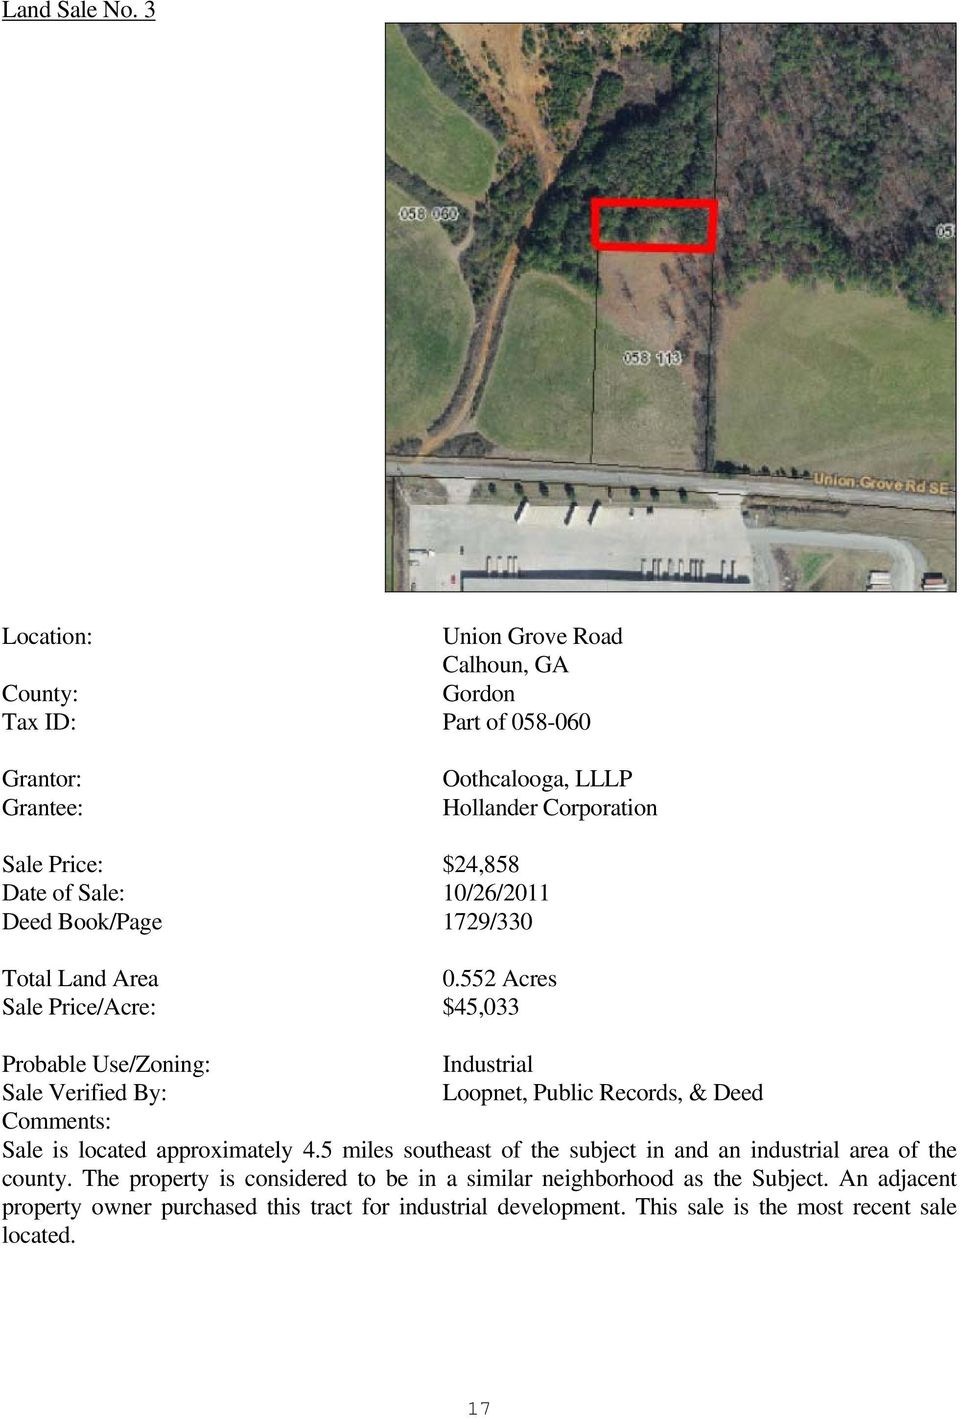 Sale: 10/26/2011 Deed Book/Page 1729/330 Total Land Area 0.